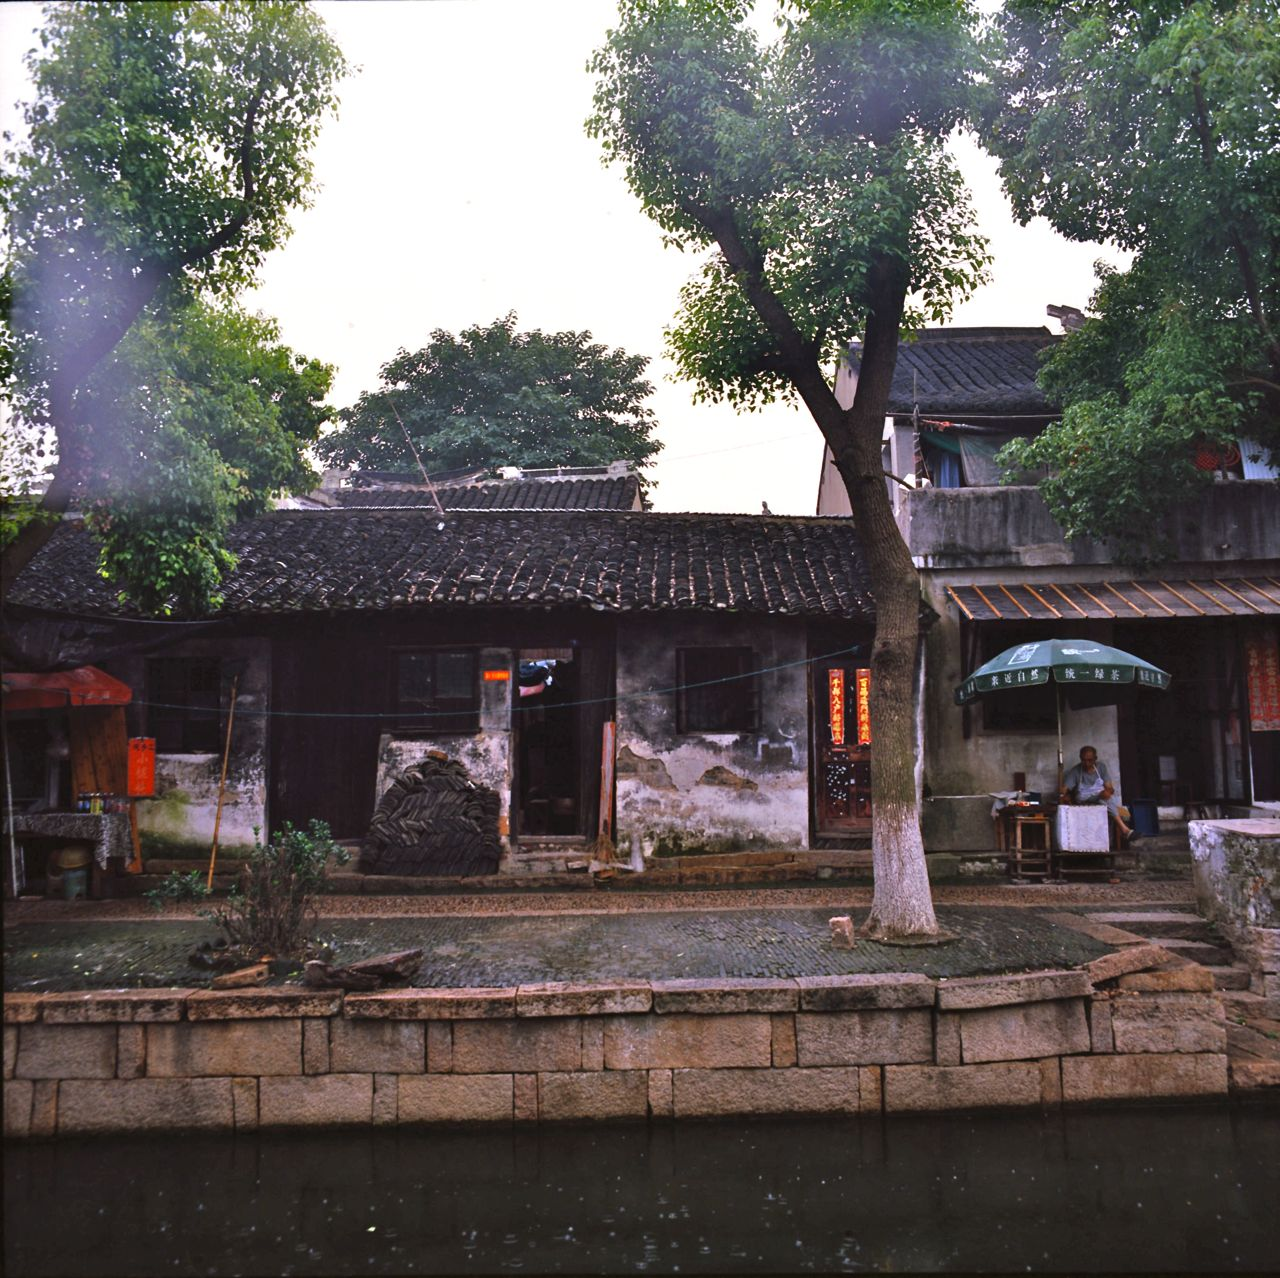 蘇州 / Suzhou, China, July 2014